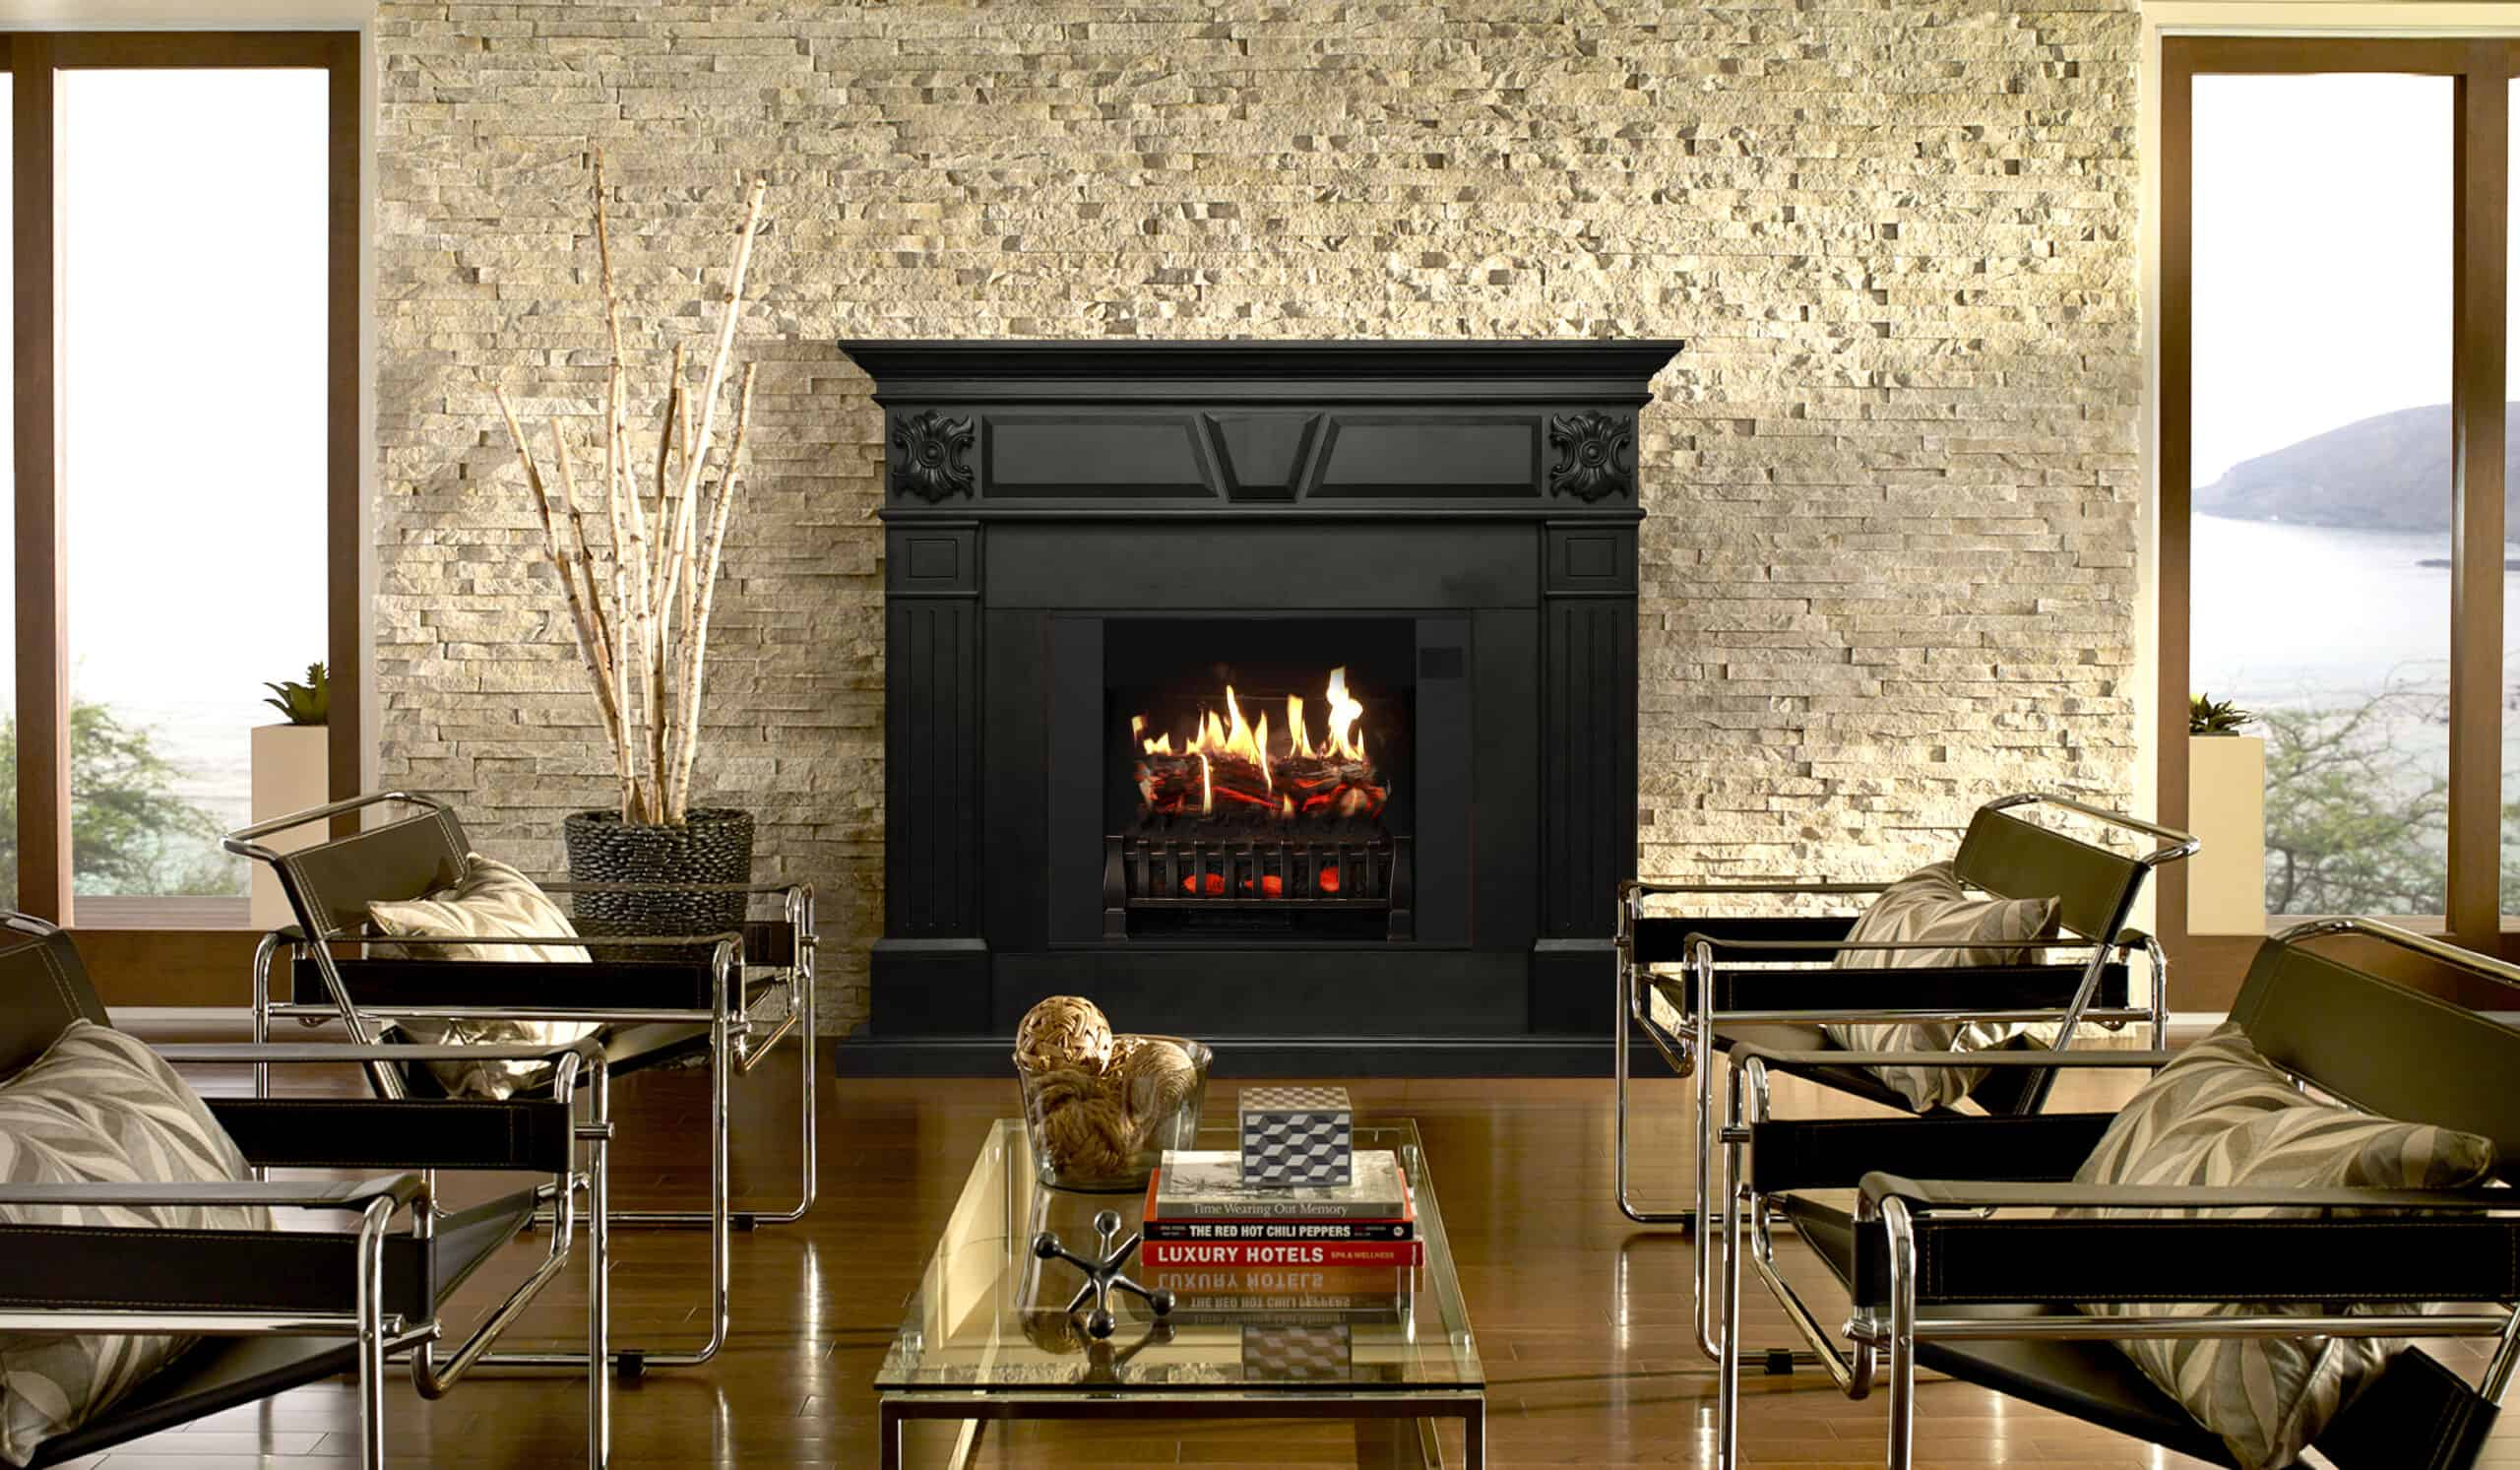 How Do Flames Work On Fireplace